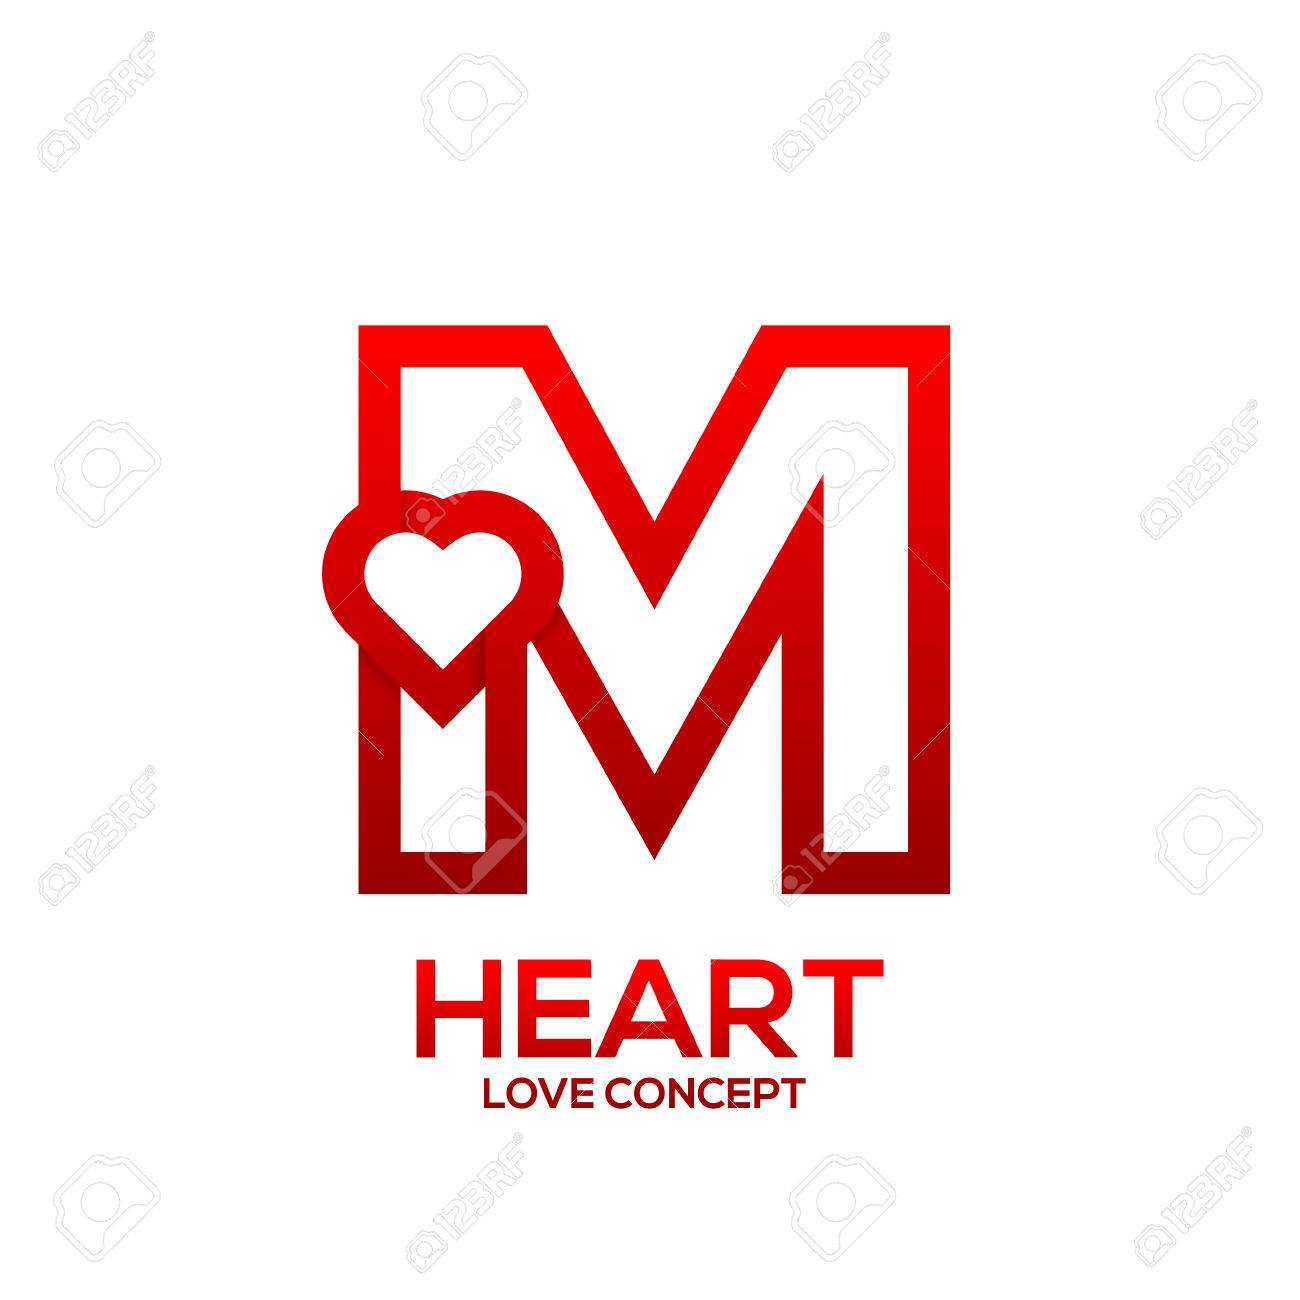 Letter M Heart Red Color LogoValentine Day Love Concept Logotype Stock Vector